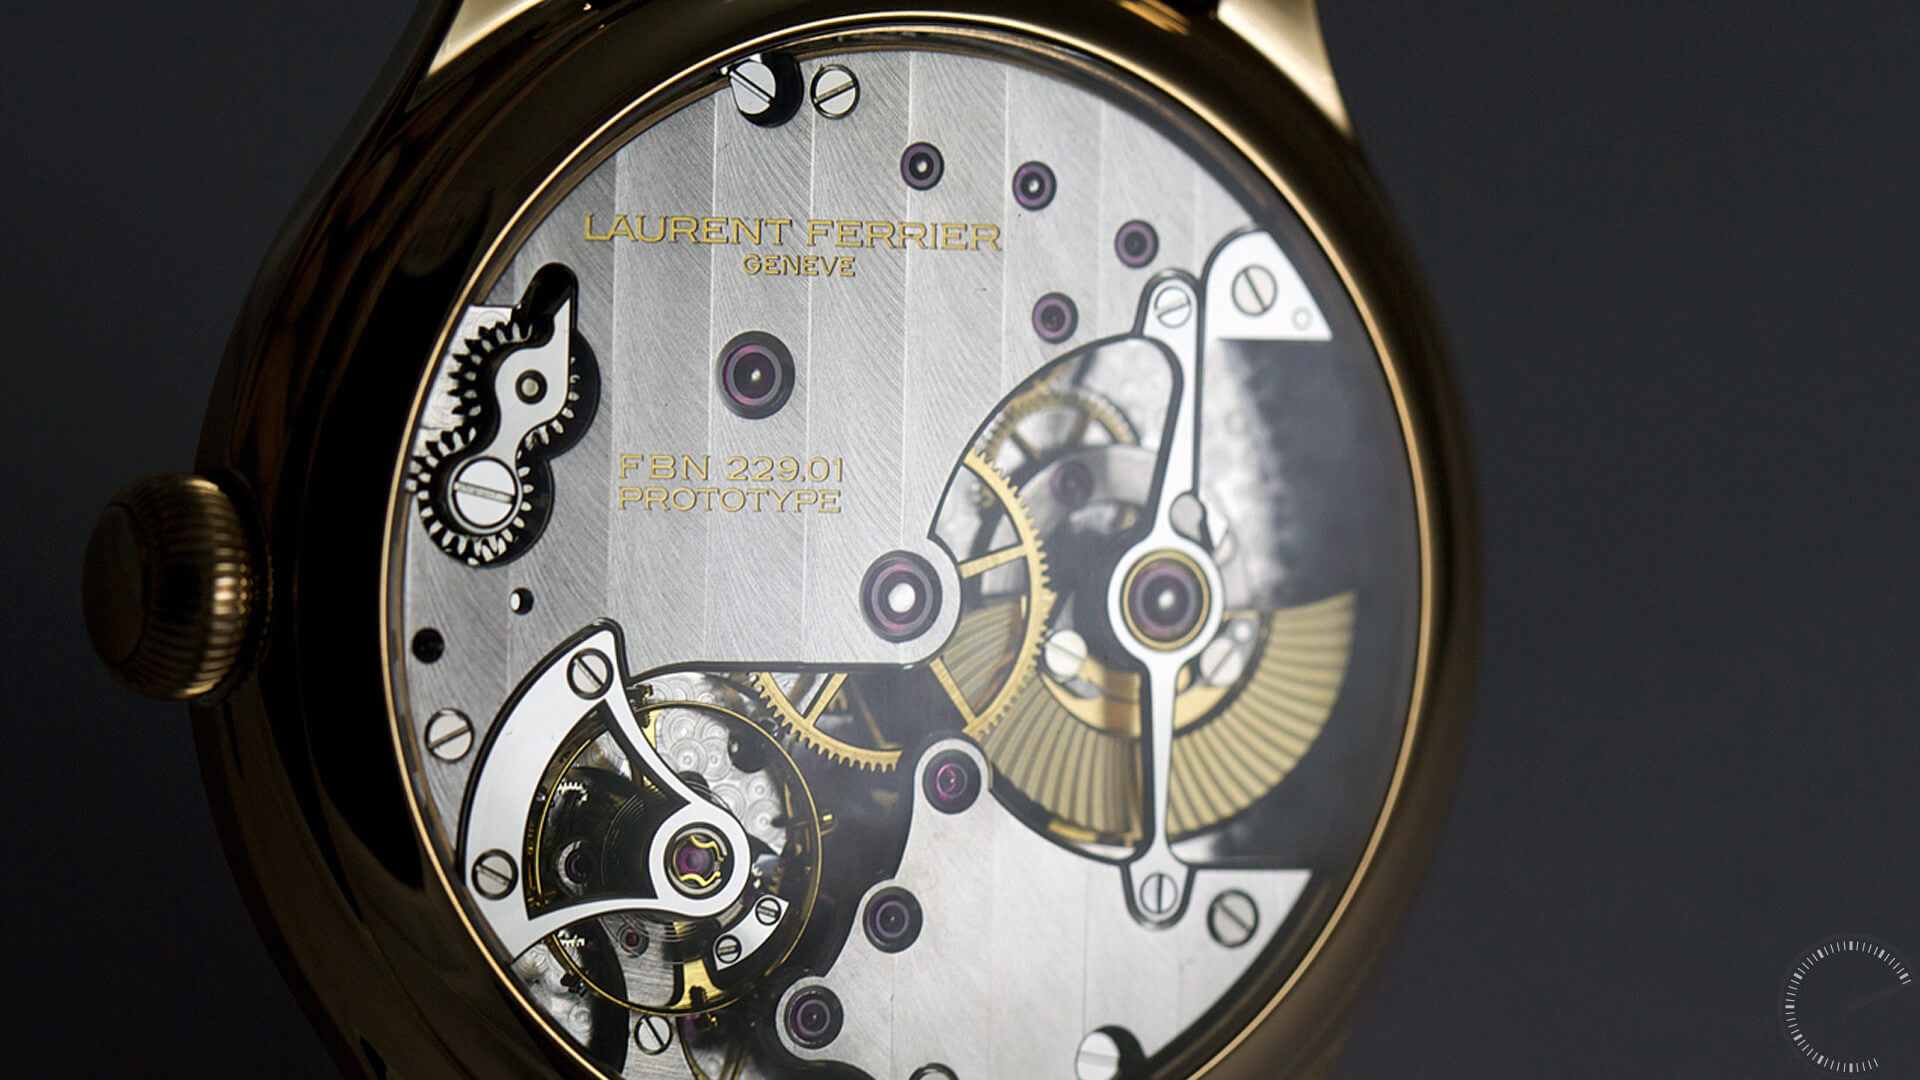 Laurent Ferrier Calibre FBN 229.01 - ESCAPEMENT magazine by Angus Davies